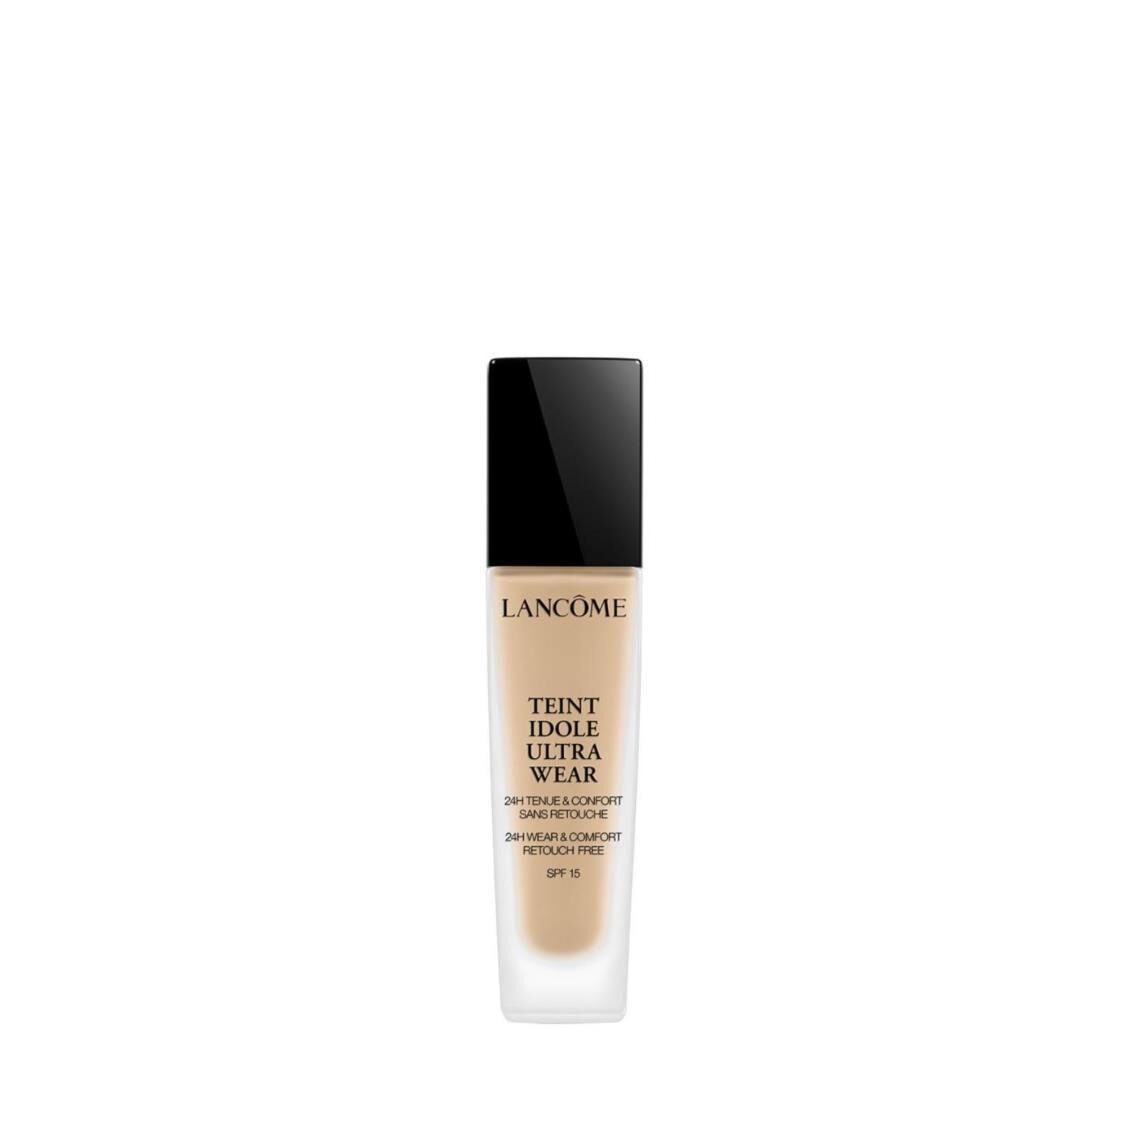 Lancome Teint Idole Ultra Wear SPF15 Foundation